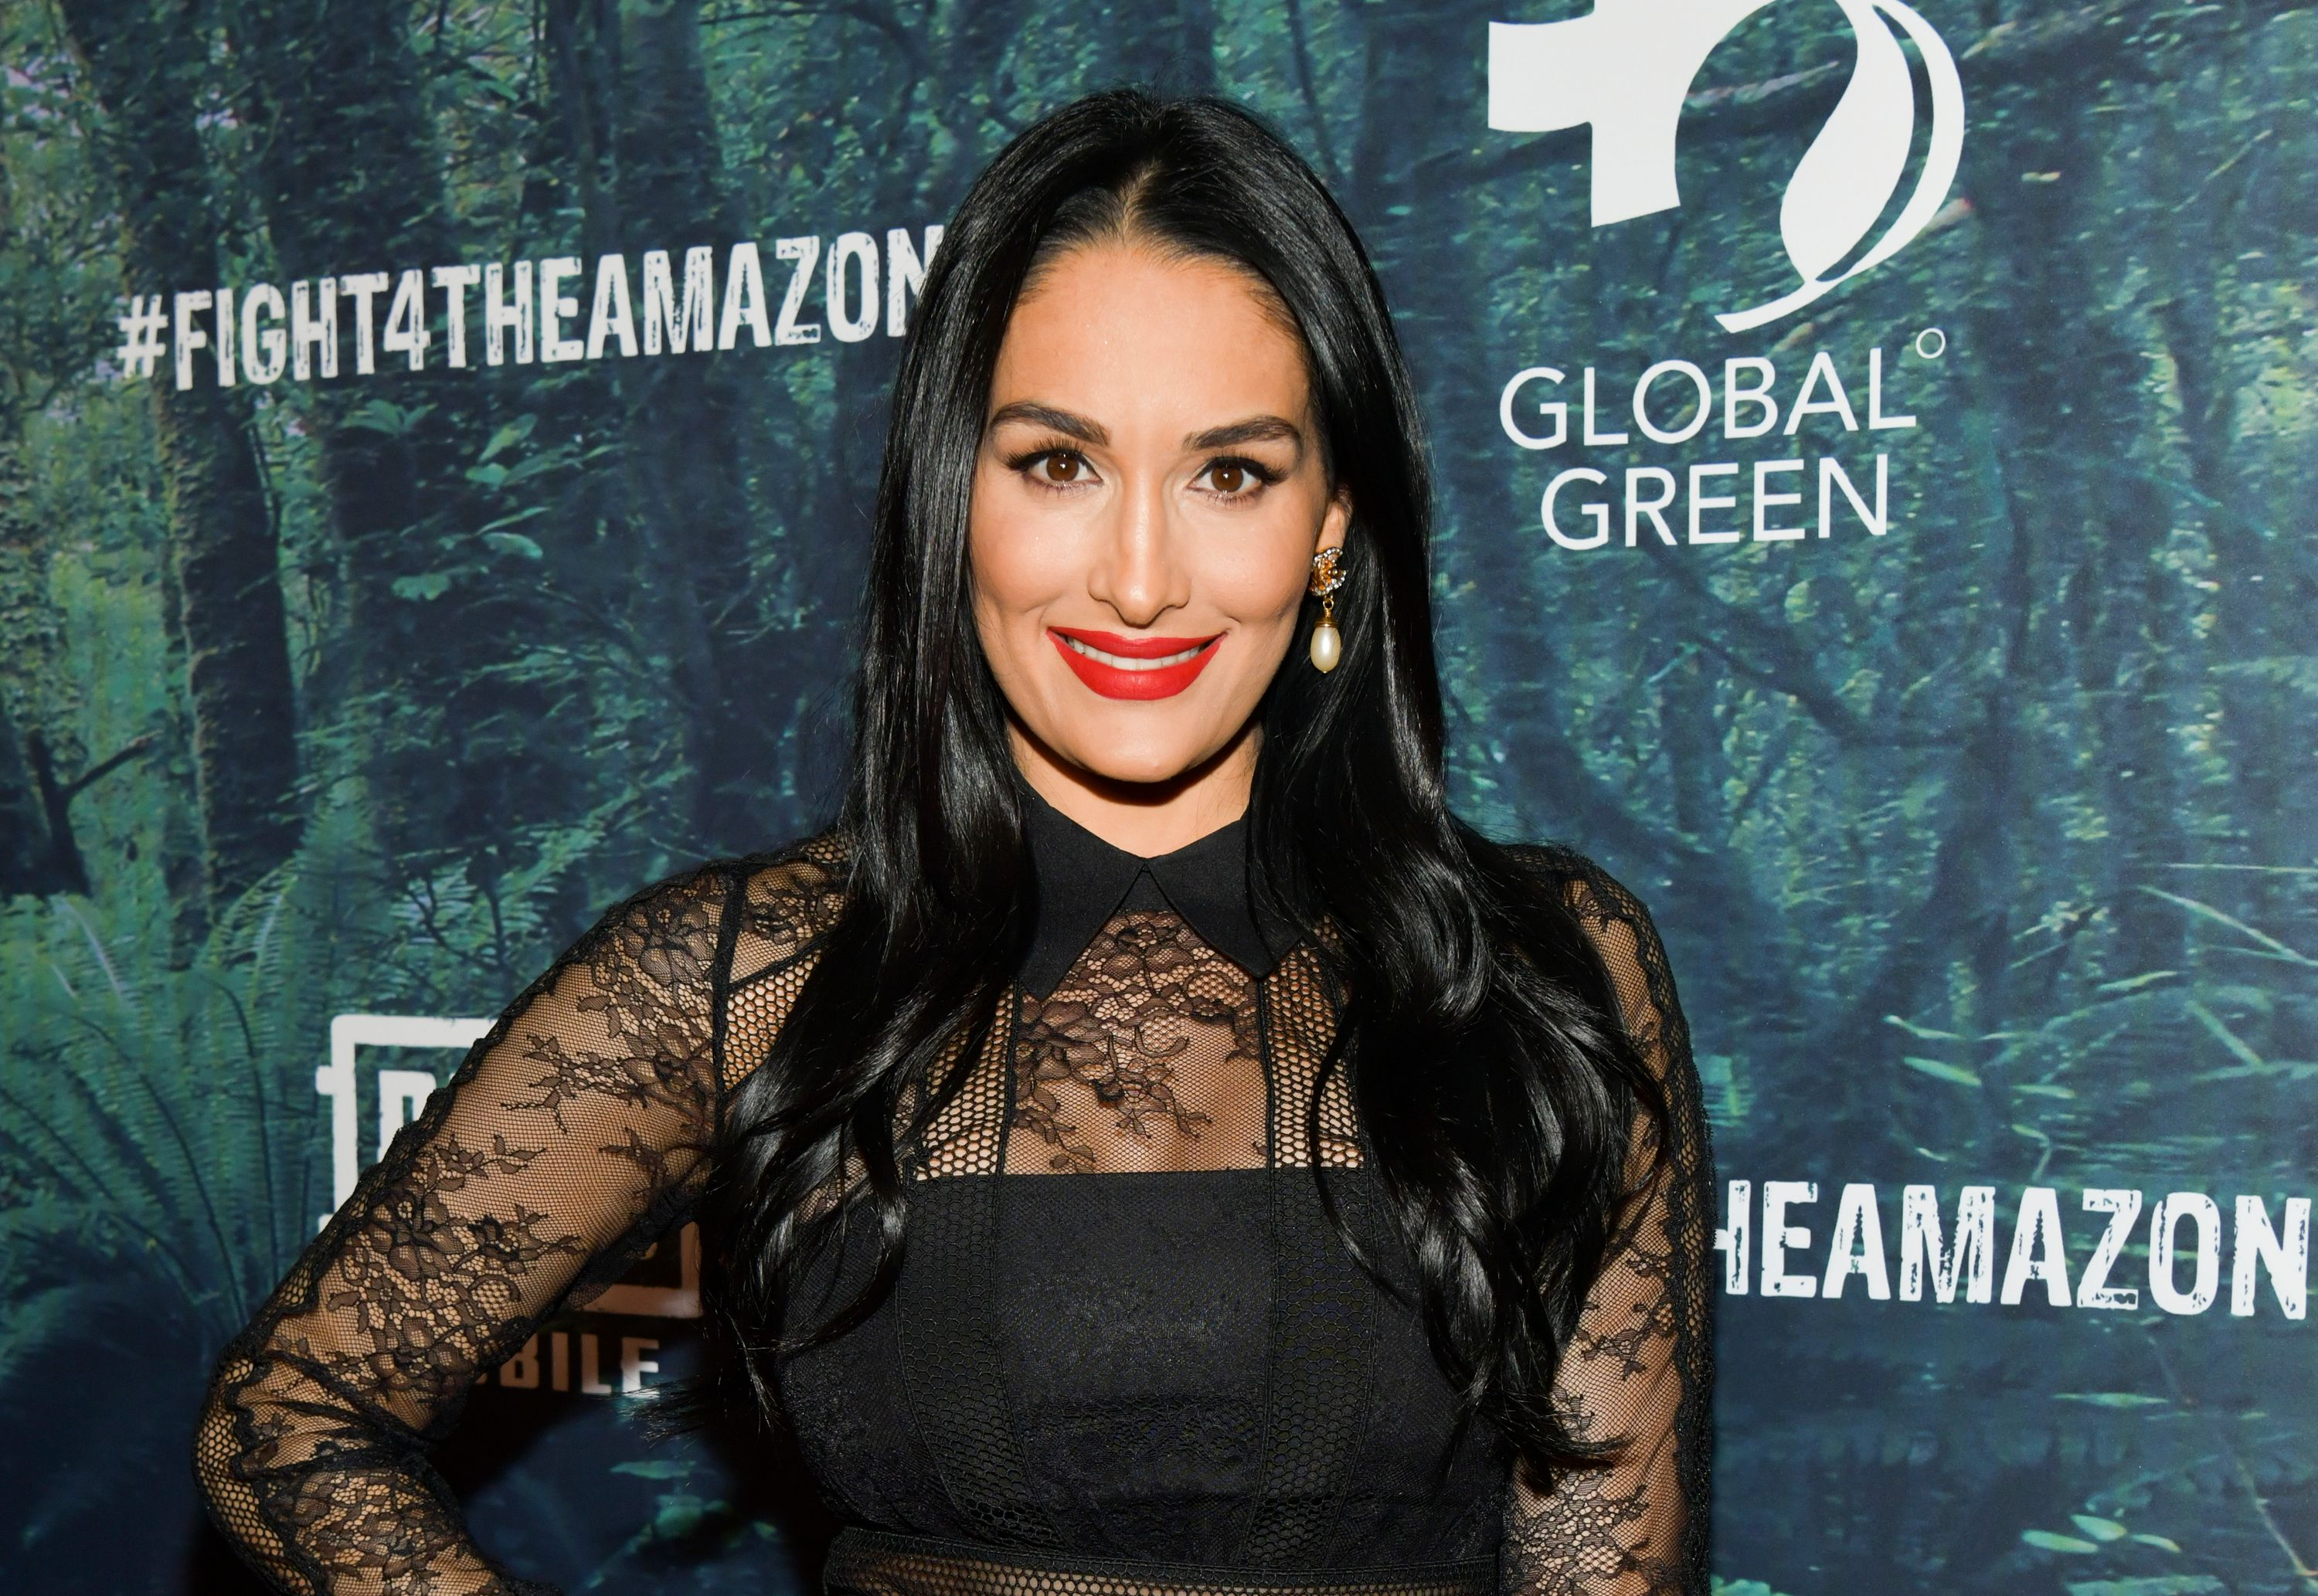 Nikki Bella smiles and poses at a charity event.